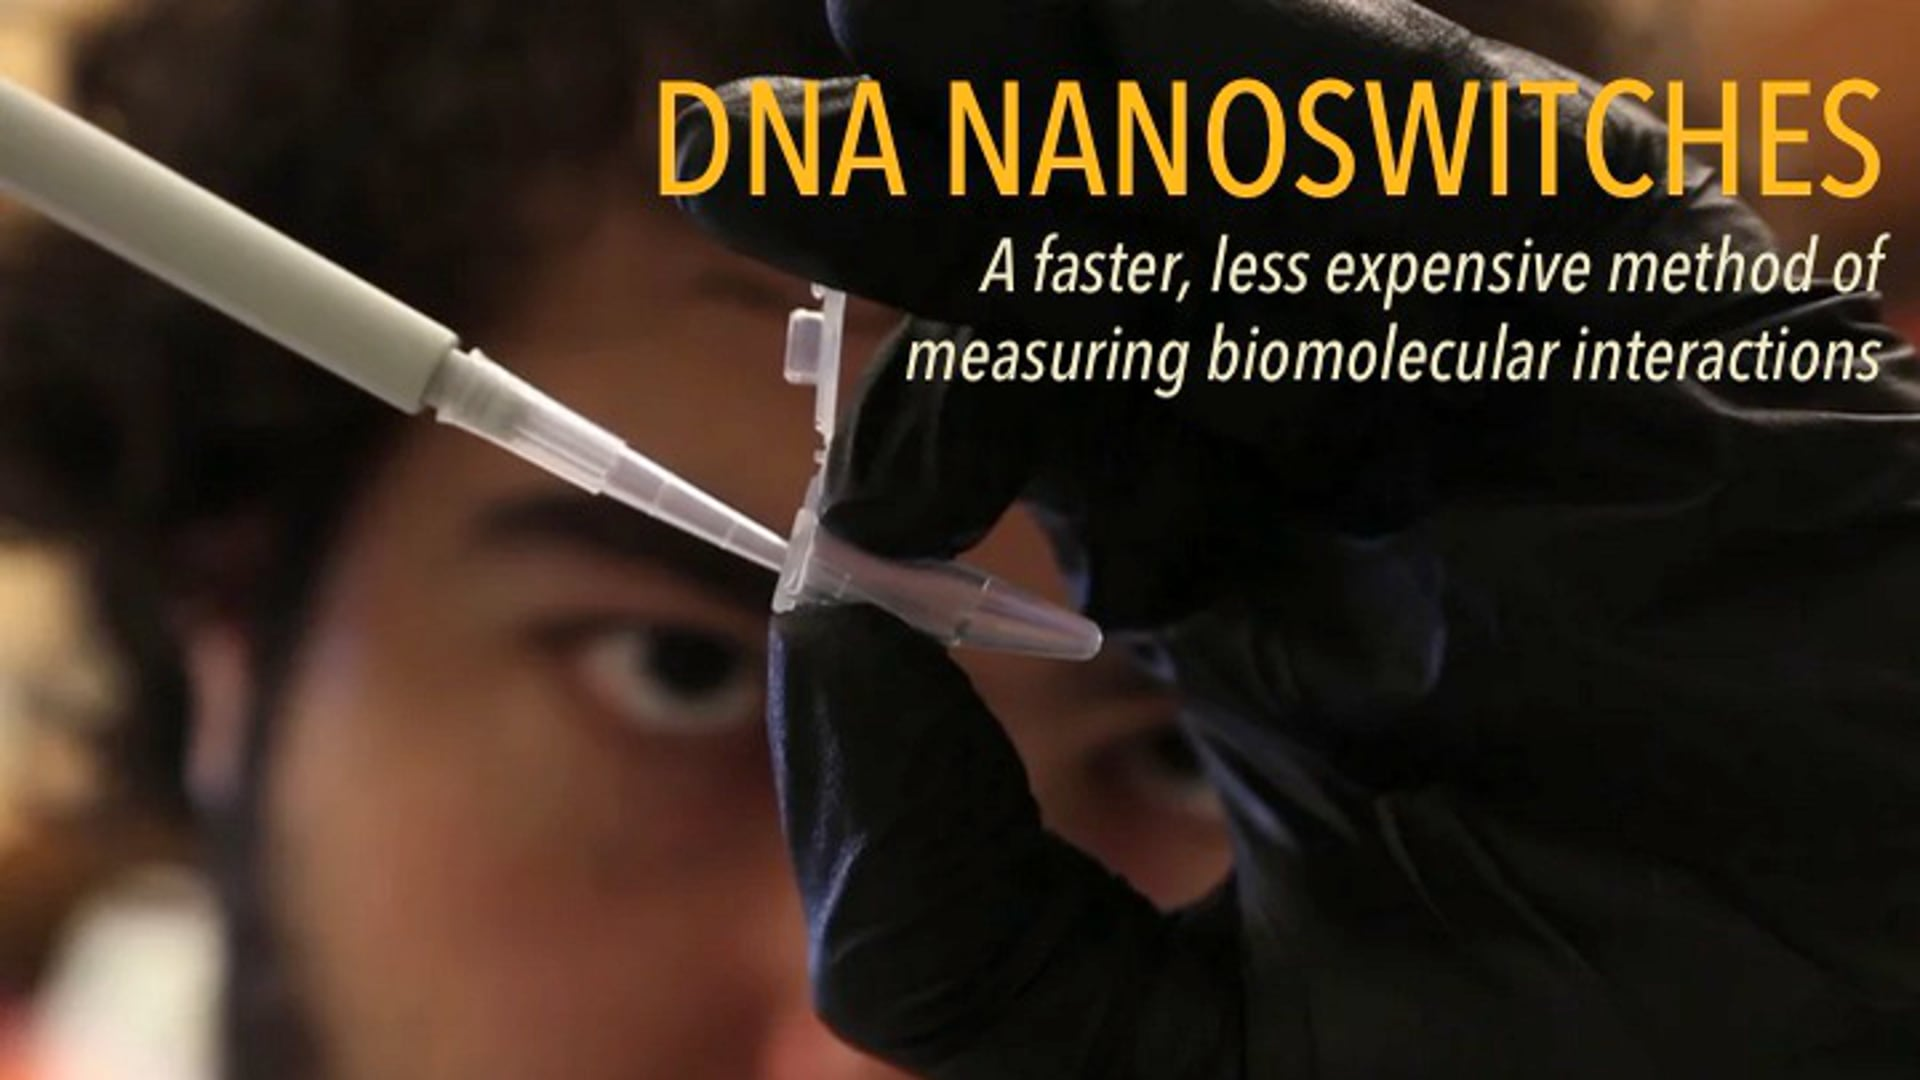 DNA Nanoswitch for Gel-Based Interaction Analysis